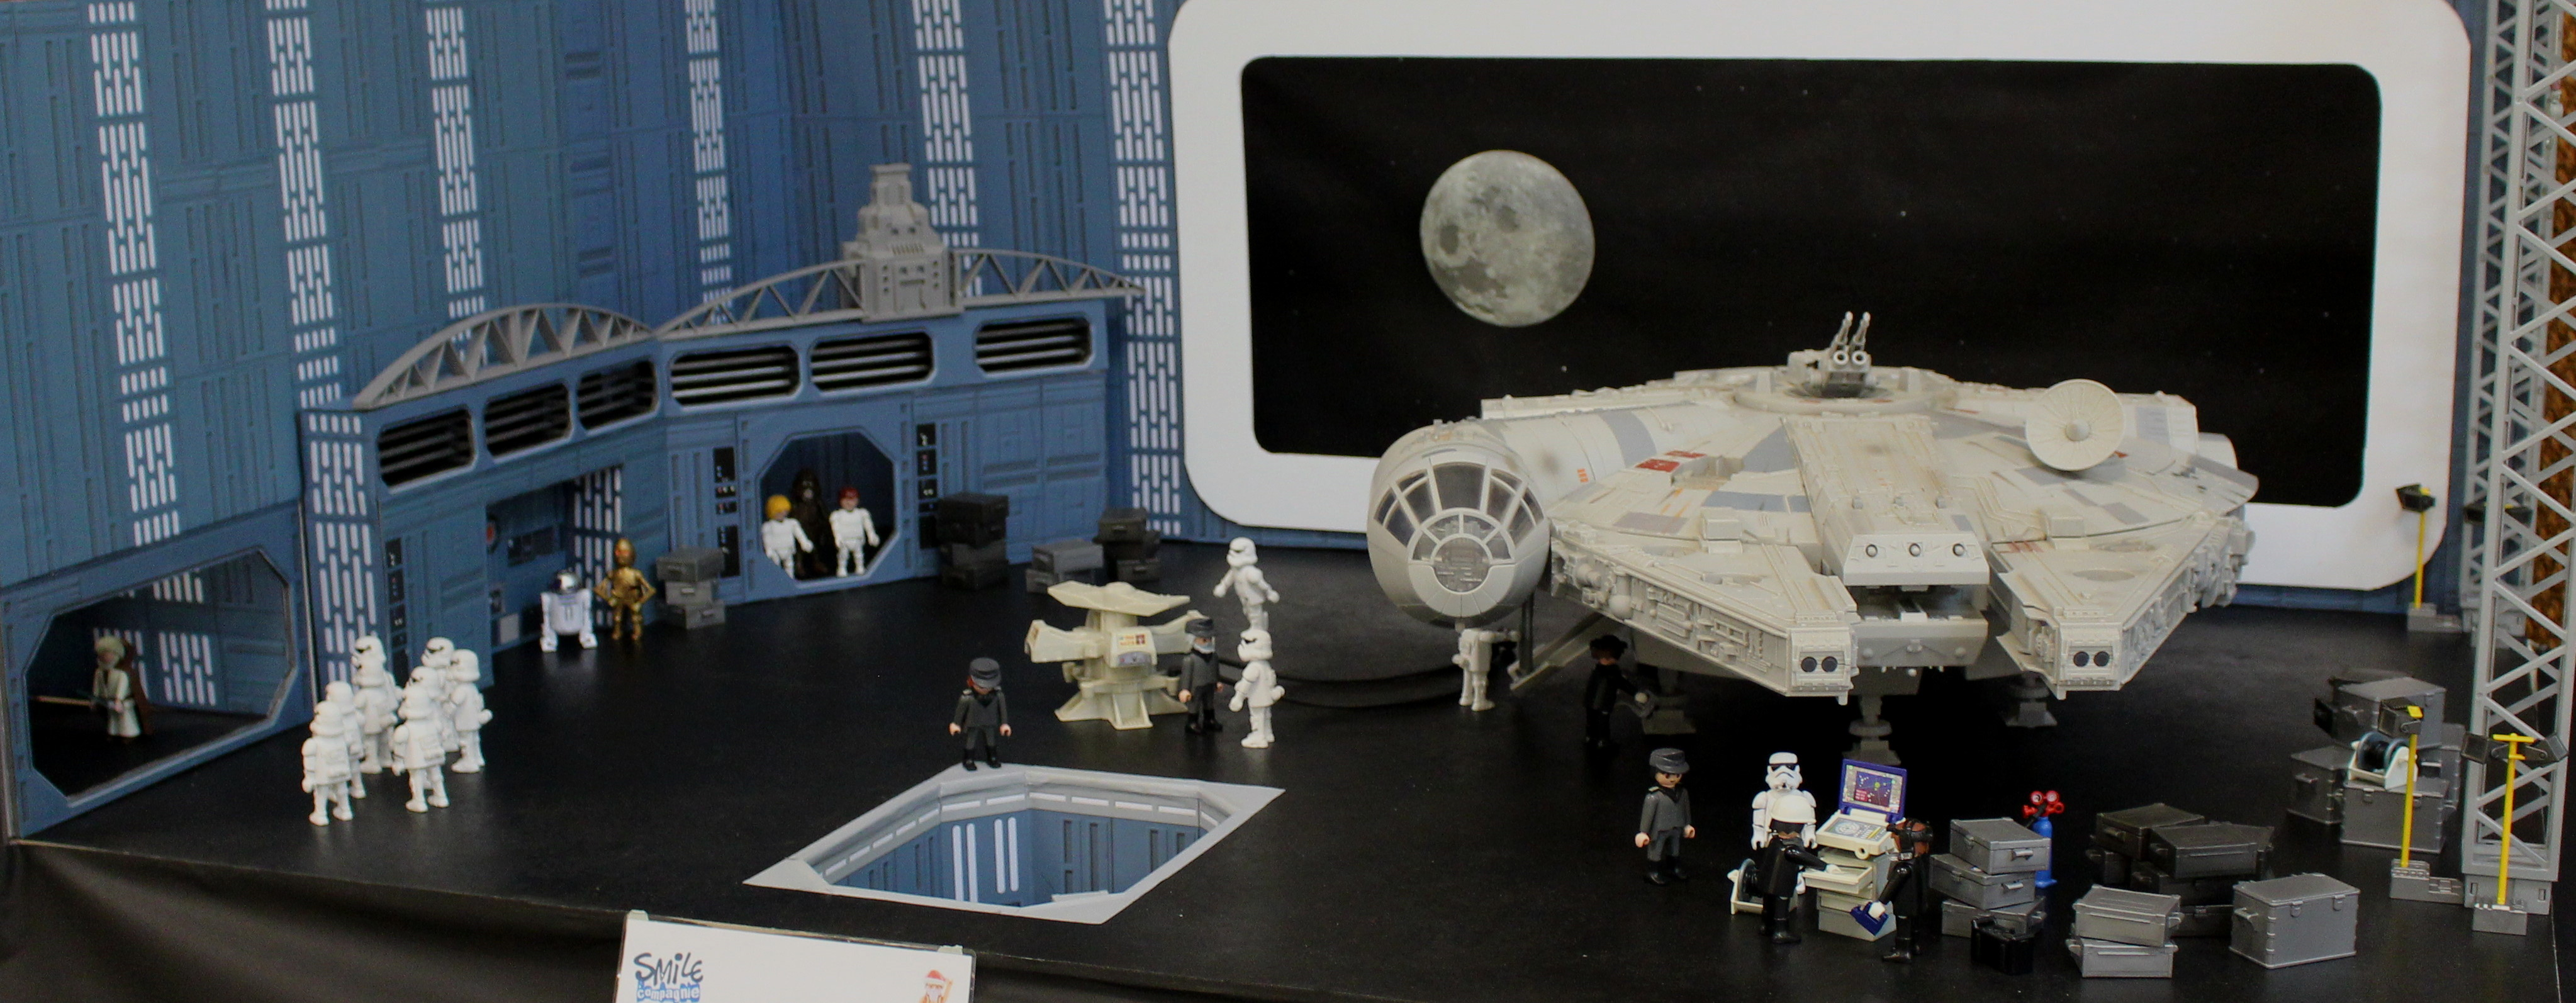 Star Wars Episode 4 en playmobil - Alizobil